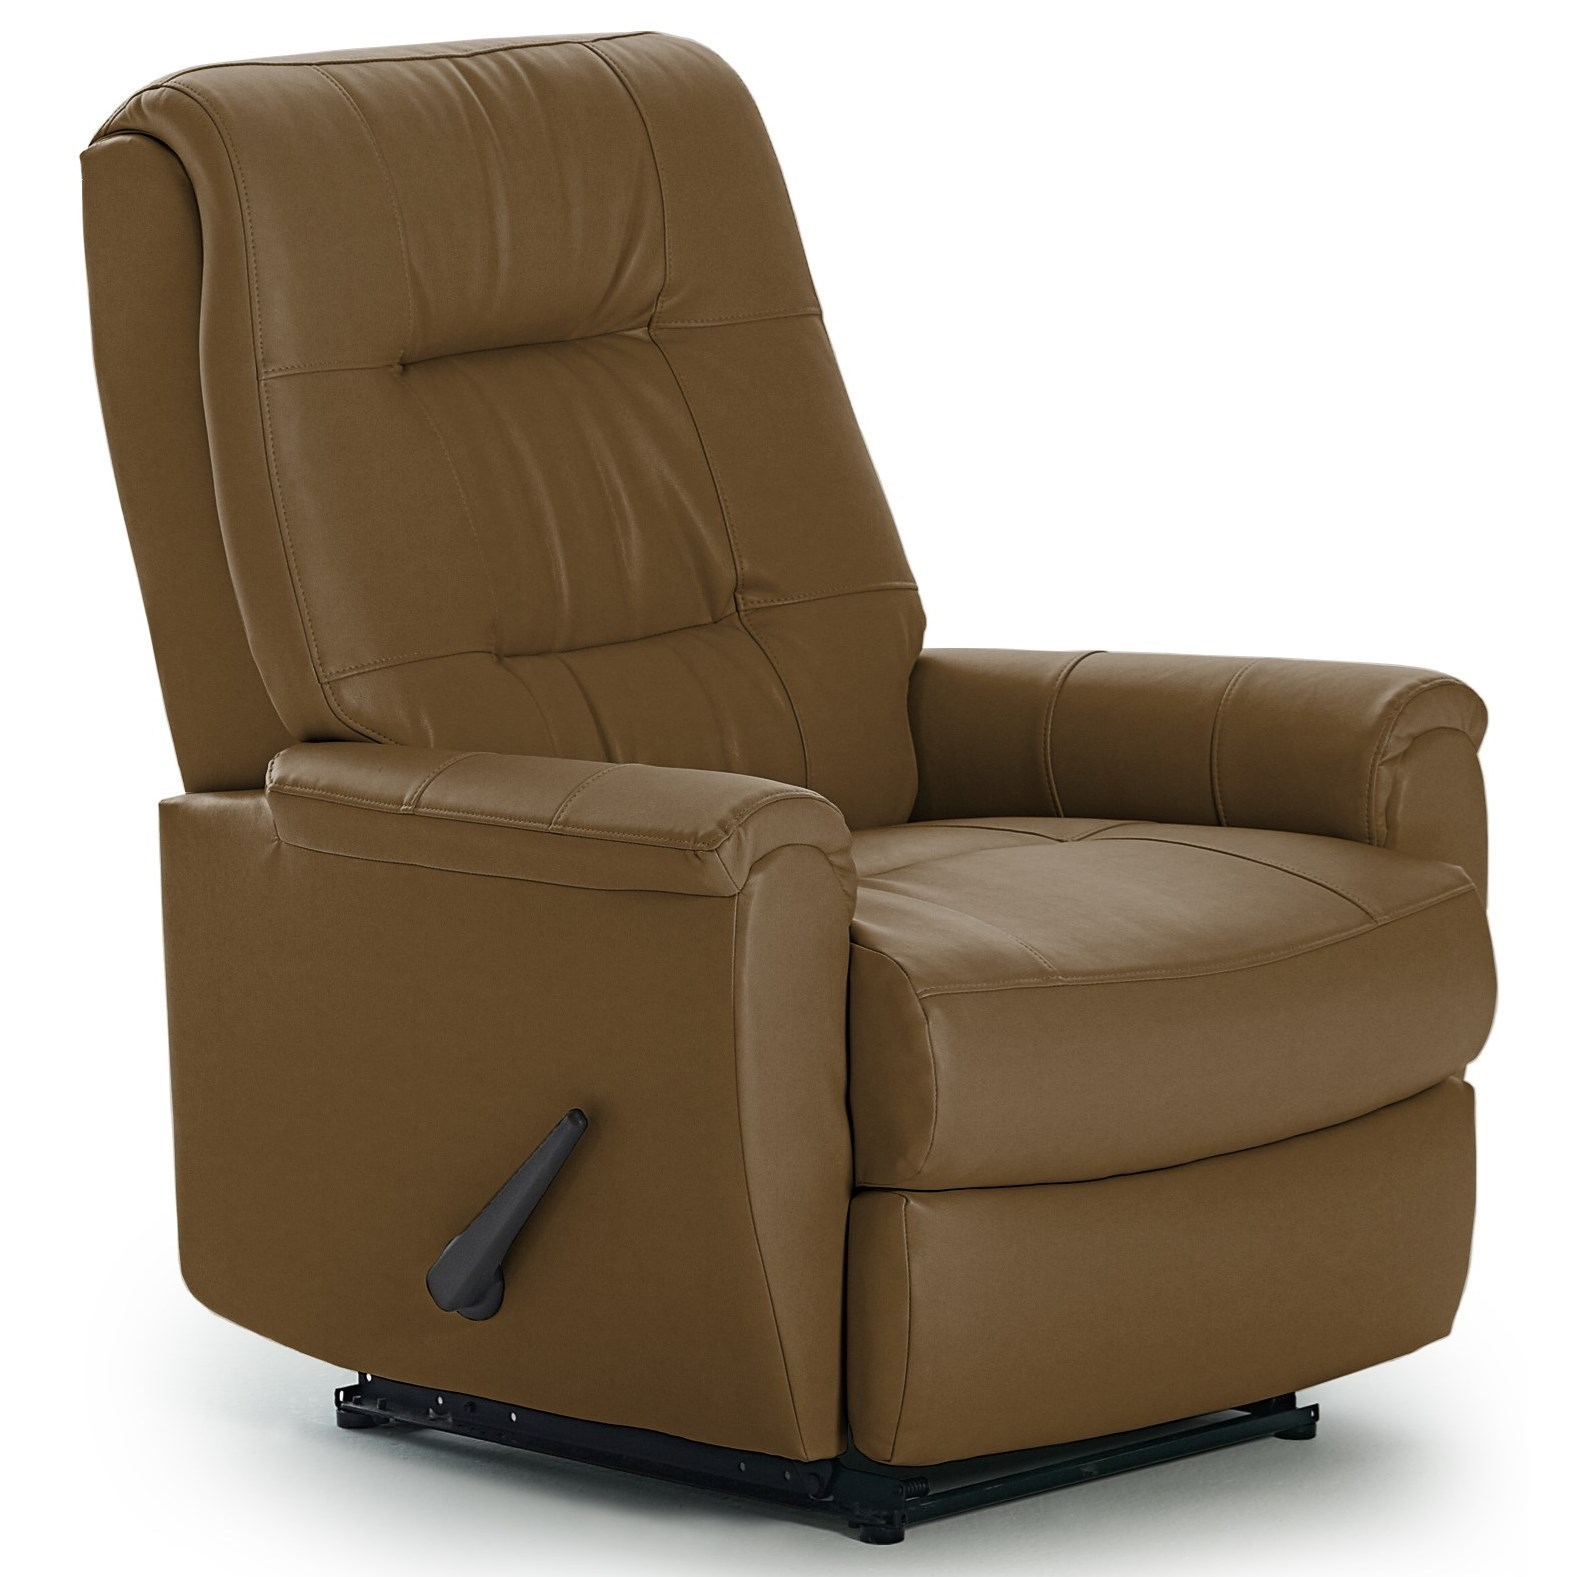 walgreens lift chairs french country dining chair best home furnishings petite recliners felicia rocker